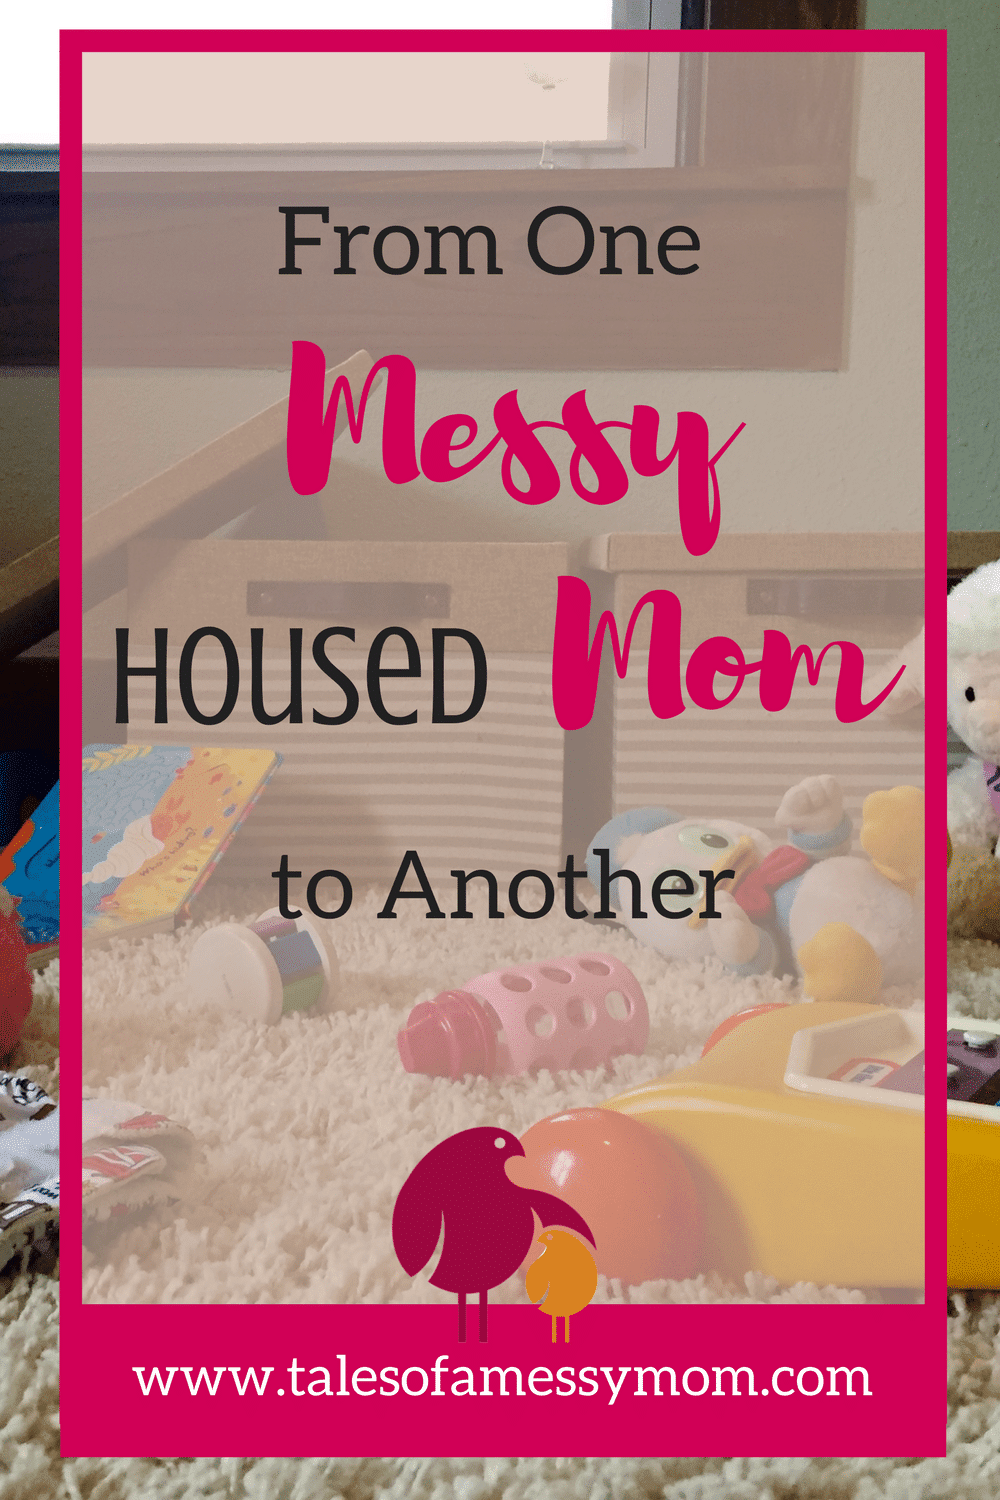 Let's face it...Motherhood is just plain messy! But, managing a house is such a minute task compared to all of the other struggles that come with parenthood. Let's learn to embrace the mess and find some balance between a clean house, happy kids, and your sanity! http://www.talesofamessymom.com